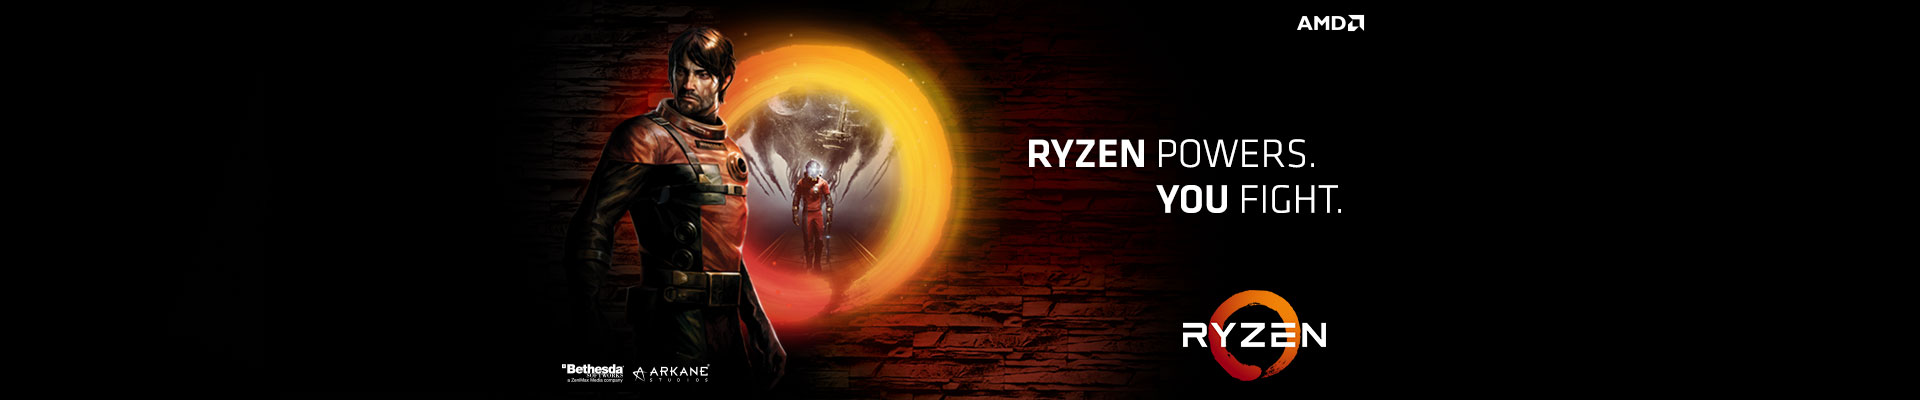 AMD Ryzen 5 Prey